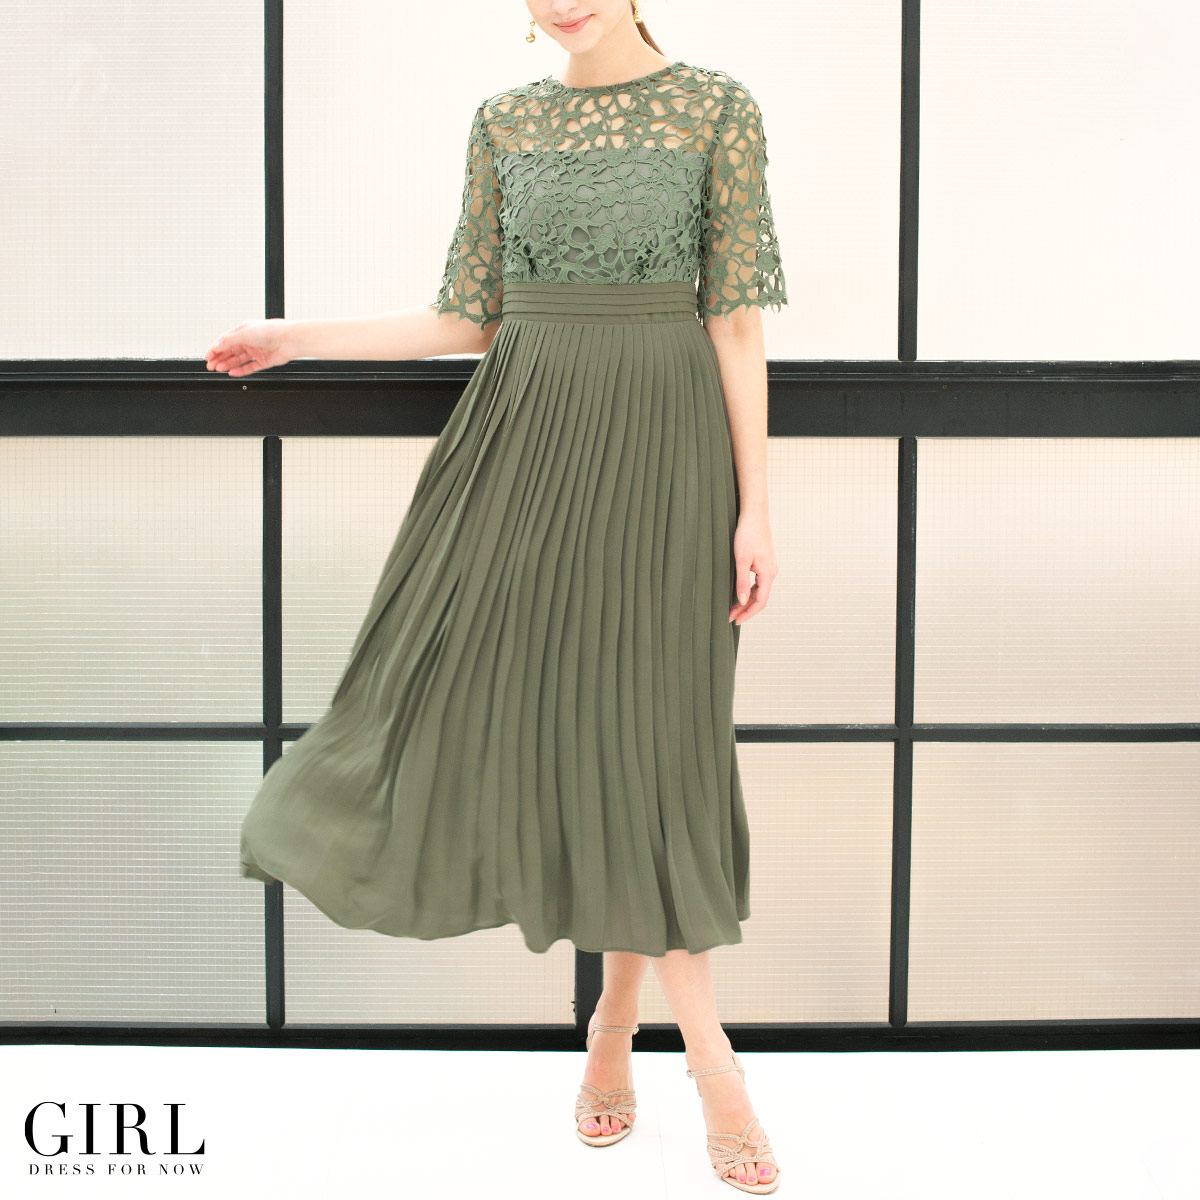 be55ab0522a55 shop.r10s.jp girl-k cabinet item image dress6 to-4...